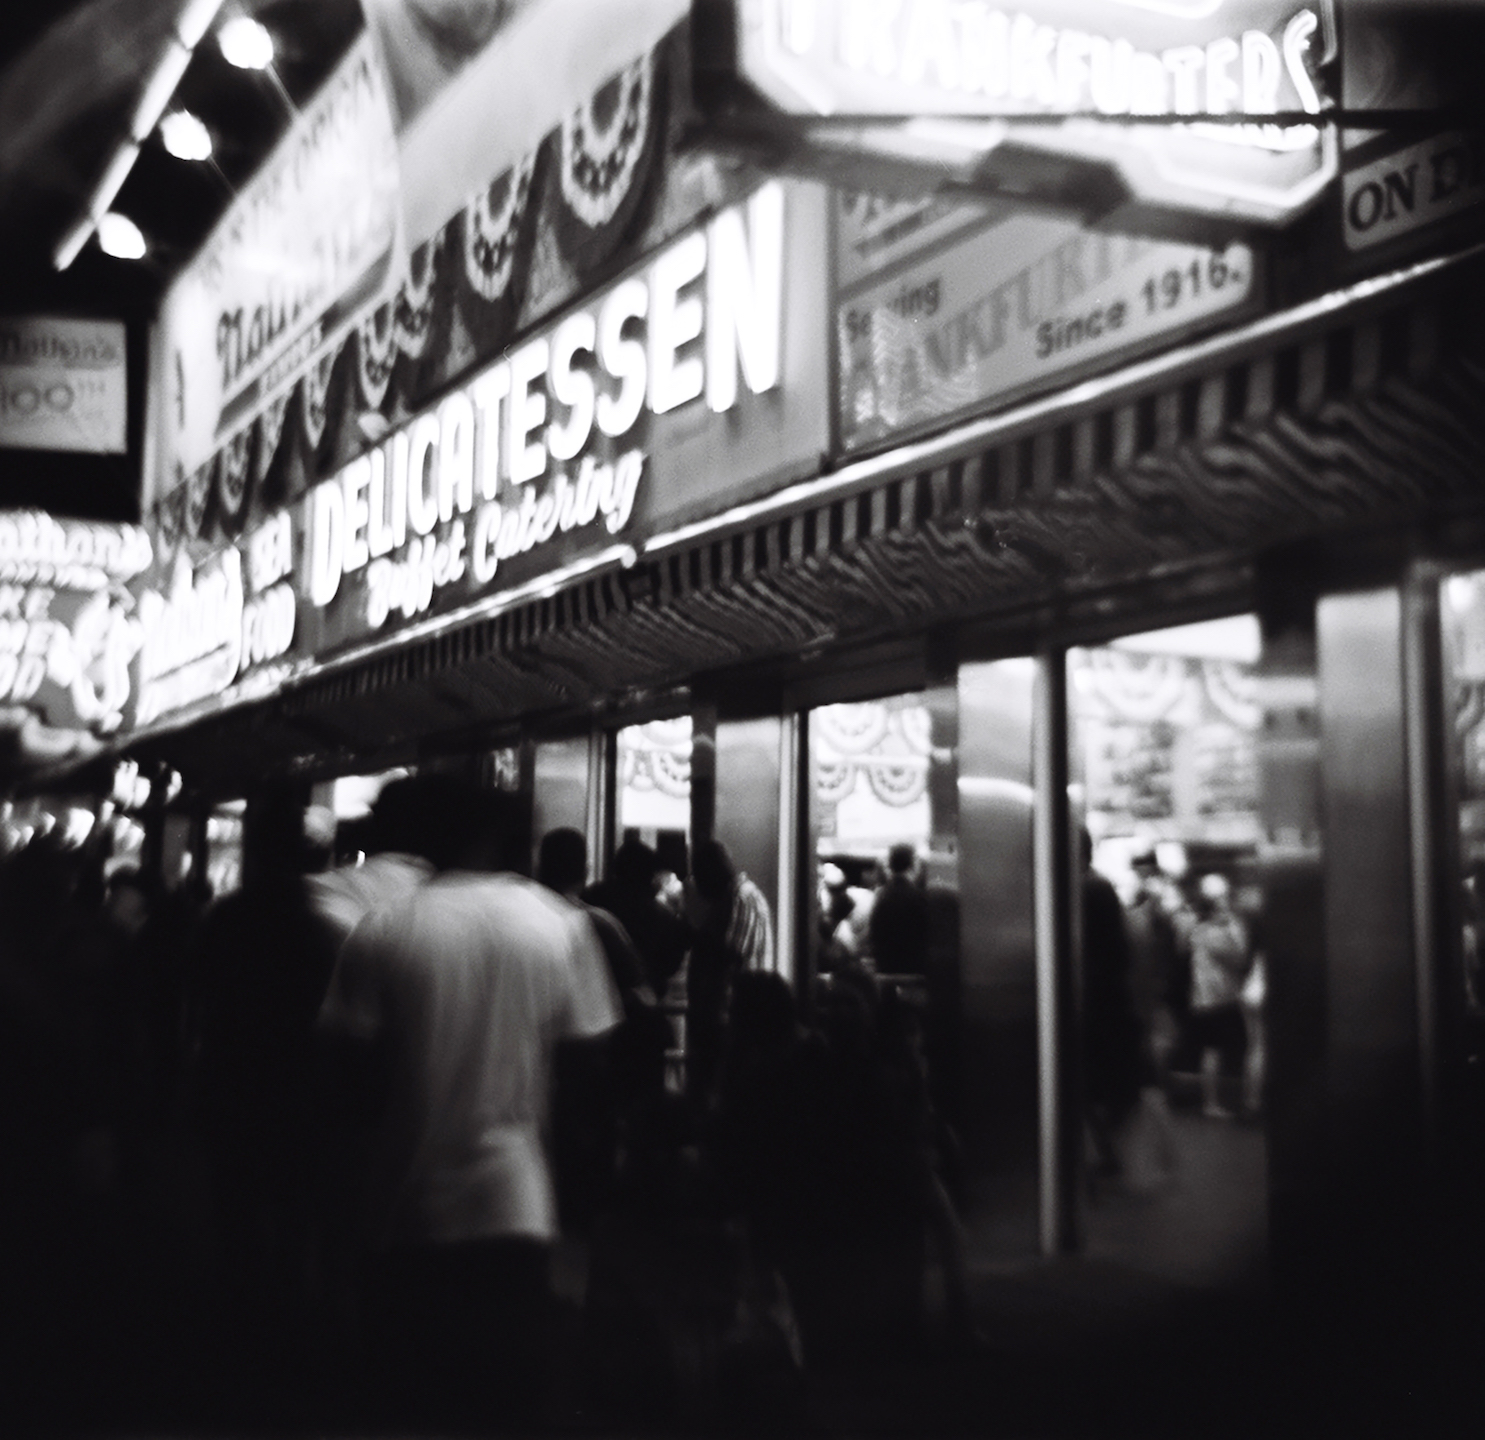 NATHAN'S DELICATESSEN AT NIGHT